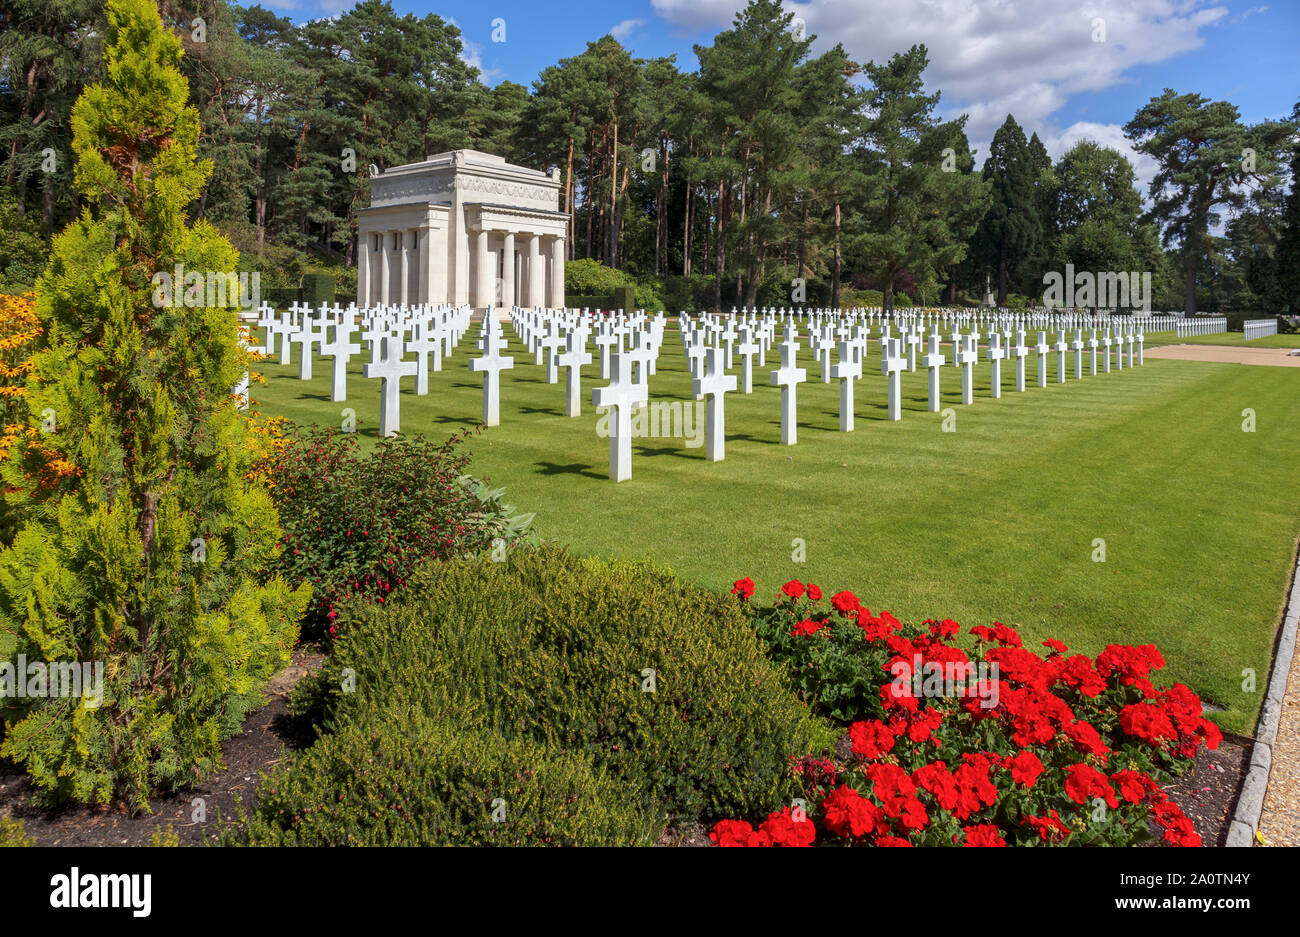 Marble crosses and Chapel in the American Section of the Military Cemeteries at Brookwood Cemetery, Pirbright, Woking, Surrey, southeast England, UK Stock Photo